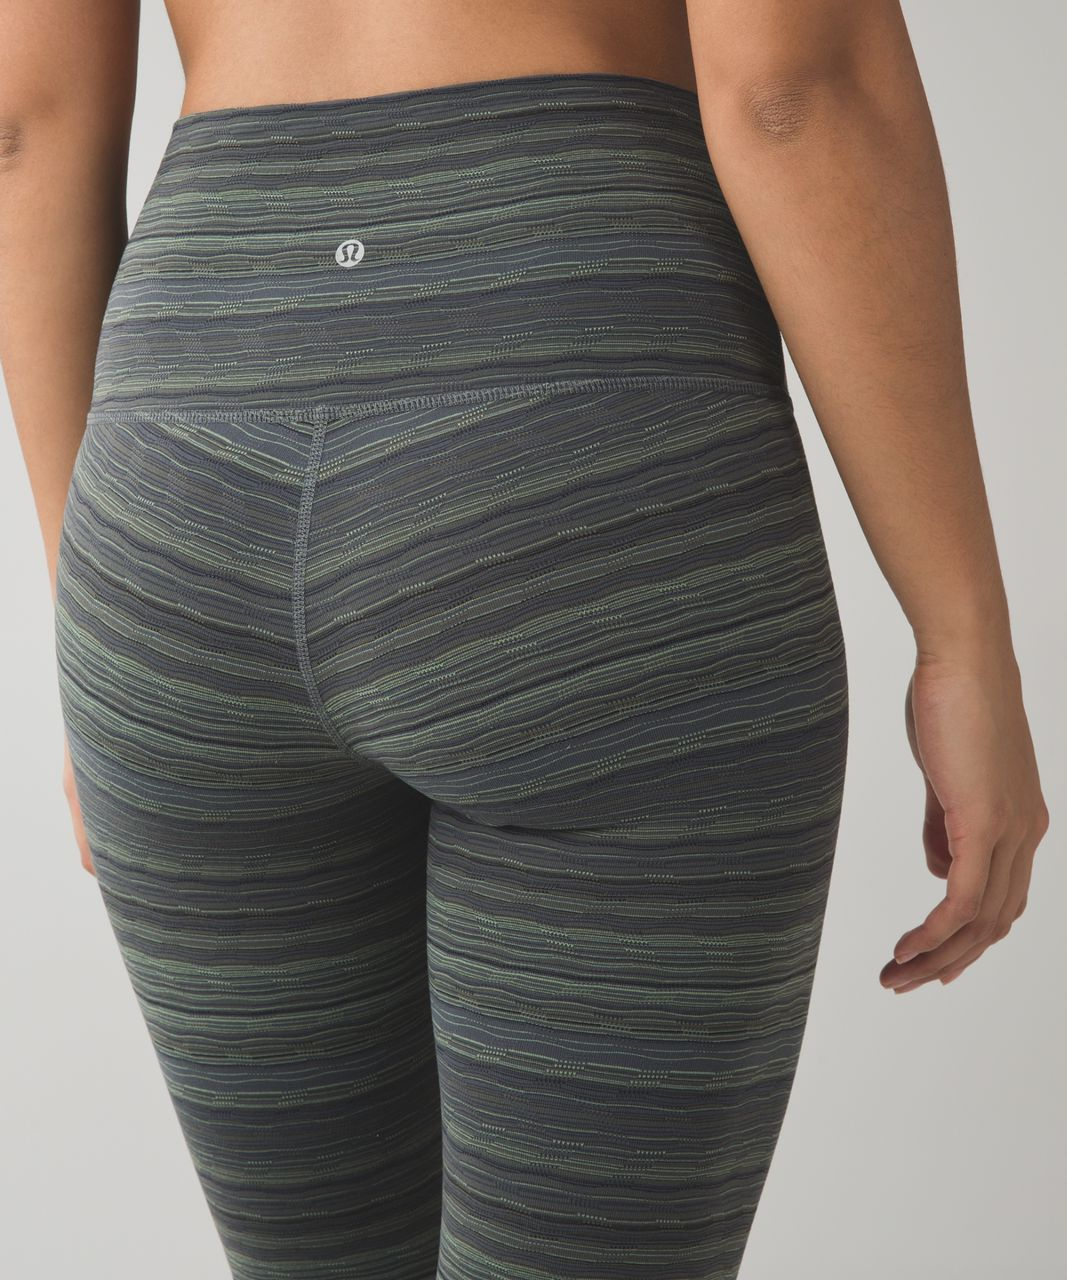 Lululemon Wunder Under Pant (Hi-Rise) - Space Dye Twist Dark Slate Fatigue Green